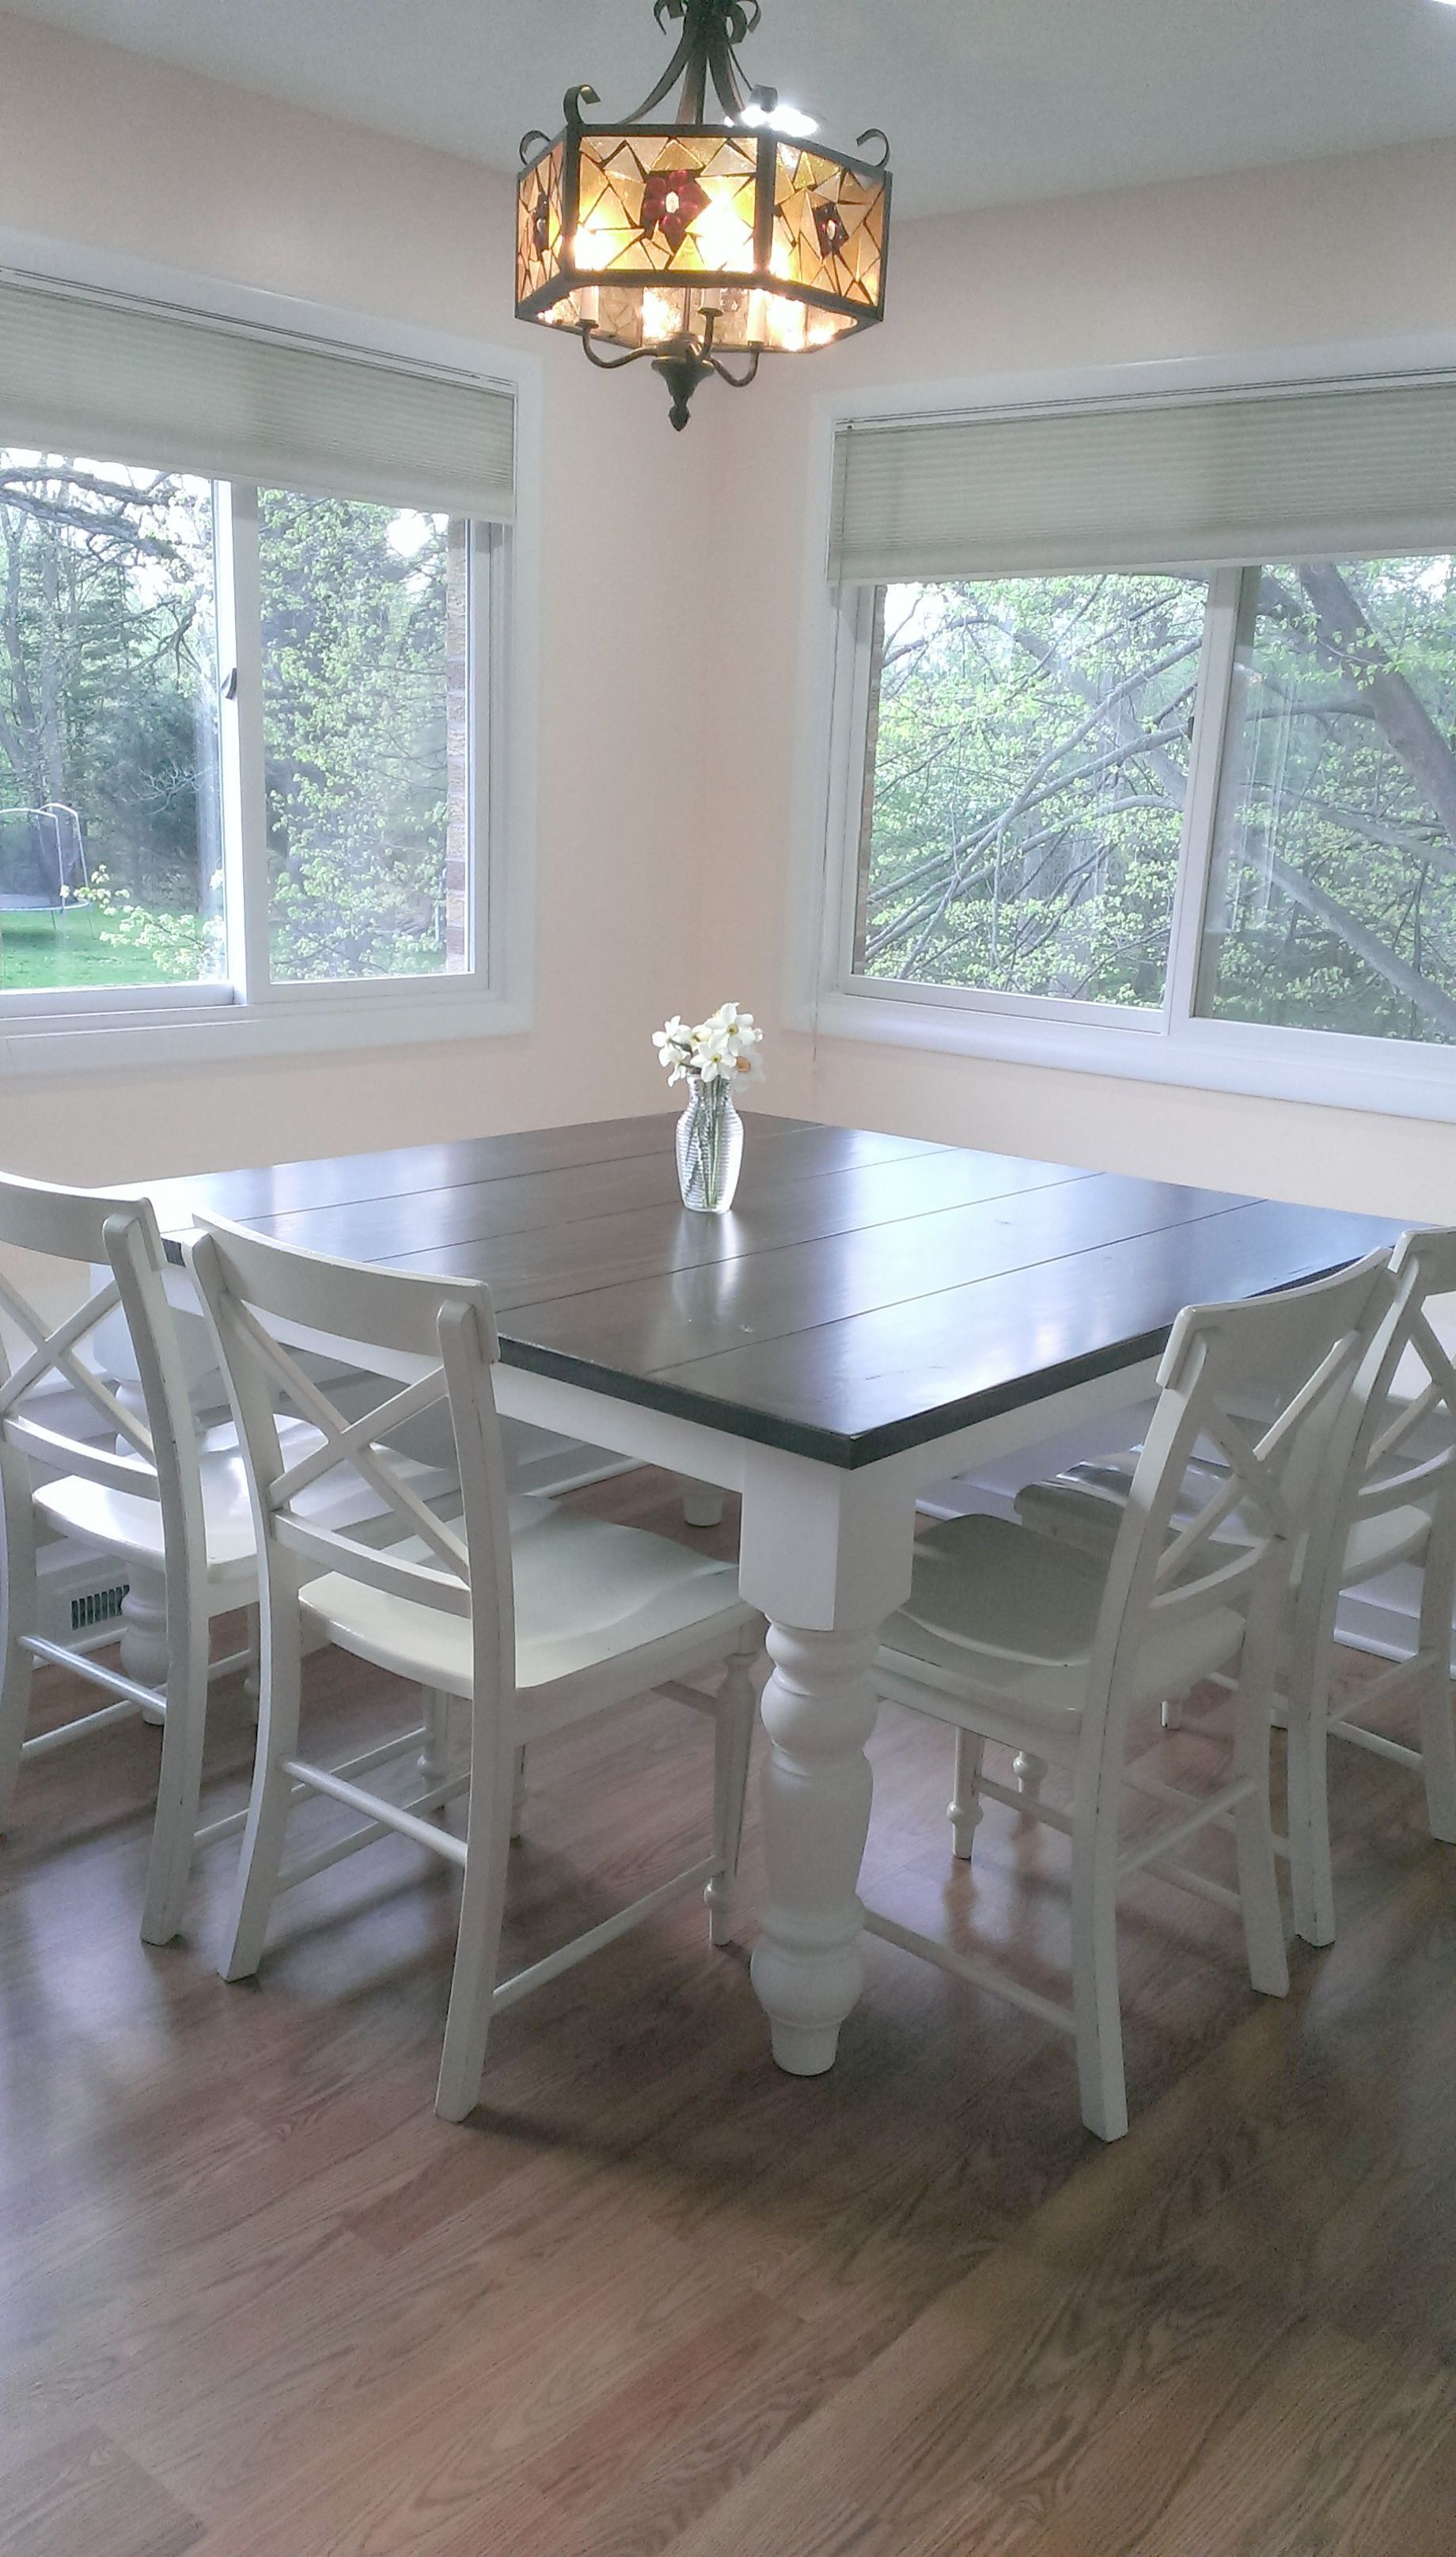 Furniture Row Kids Inside Furniture Thrift Store Near Me Furniture St Farmhouse Dining Rooms Decor Modern Farmhouse Dining Room Decor Modern Farmhouse Dining